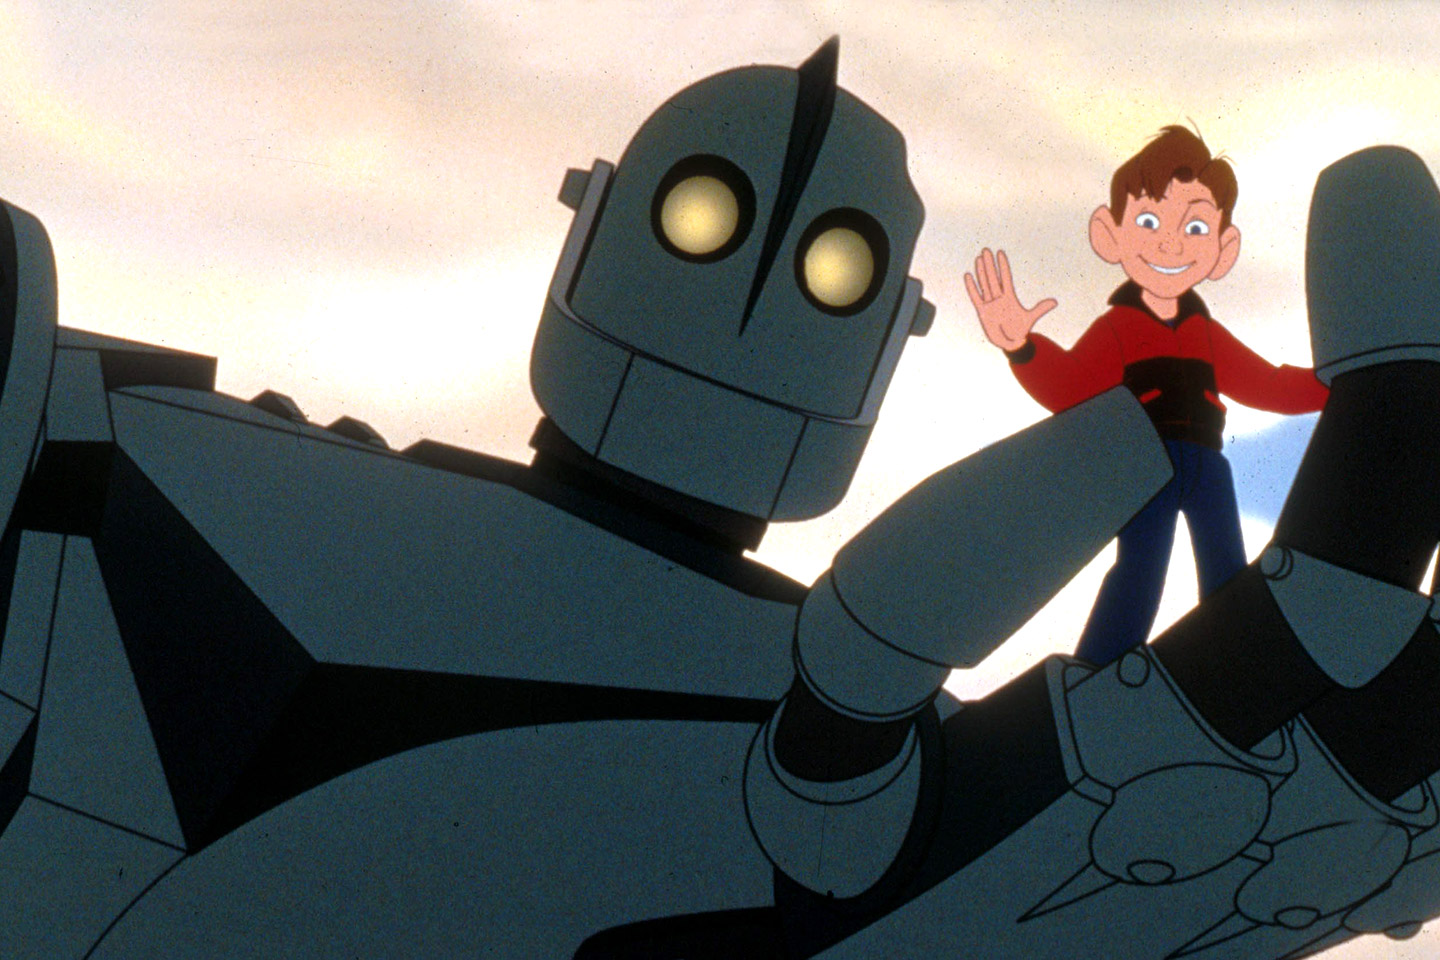 The Iron Giant back with new scenes.